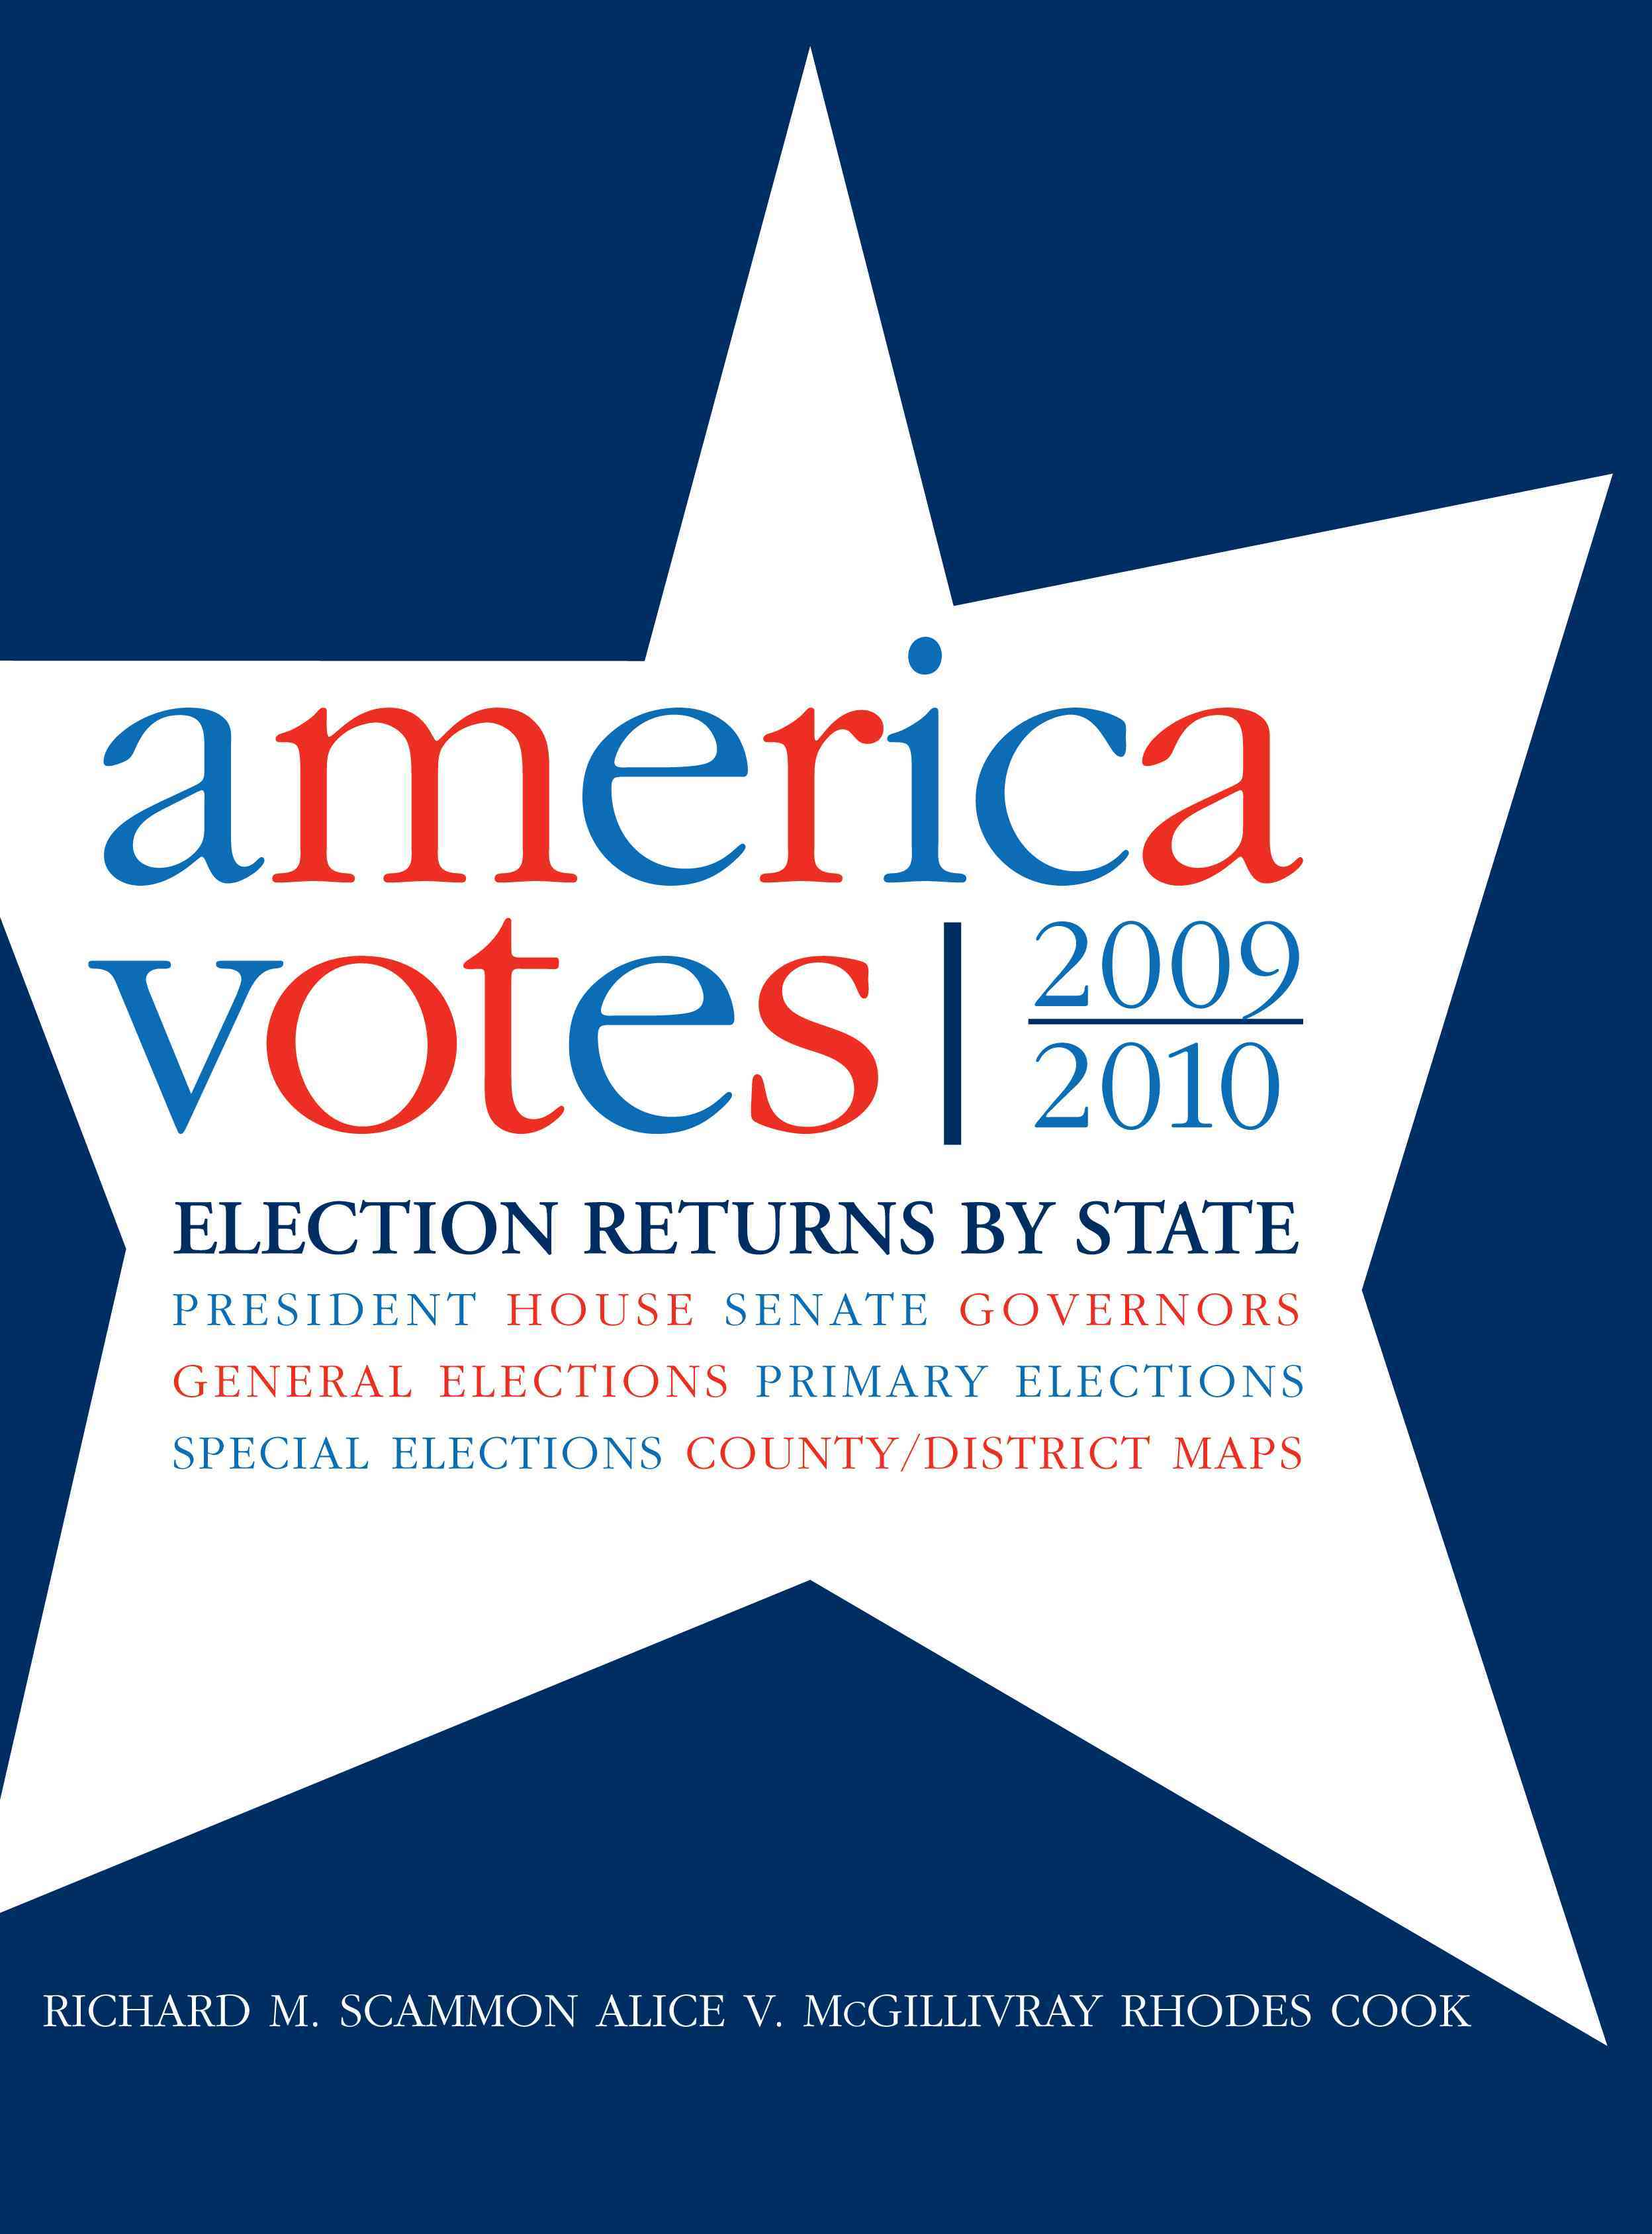 America Votes 29 2009-2010: Election Returns By State (Hardcover)